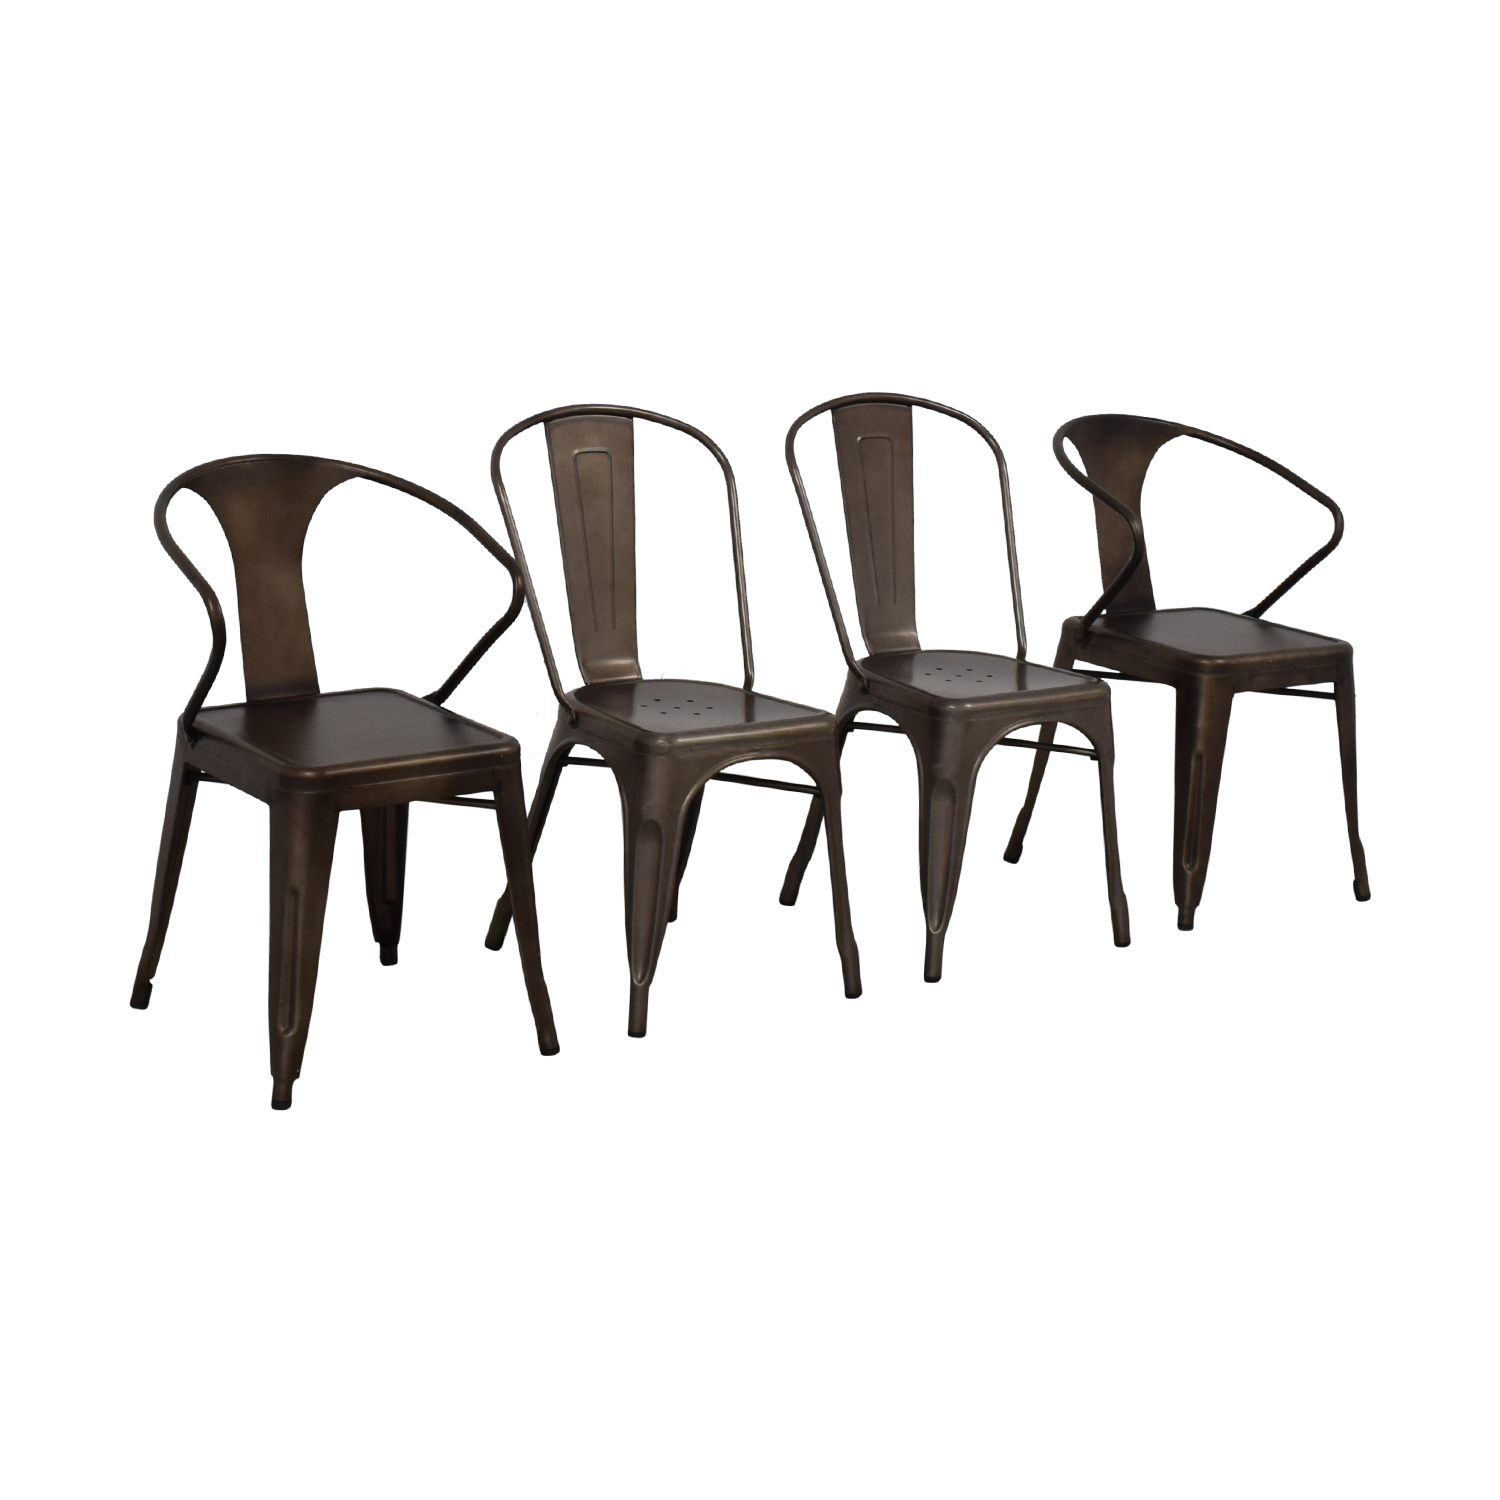 Trattoria Arm and Side Chairs for sale